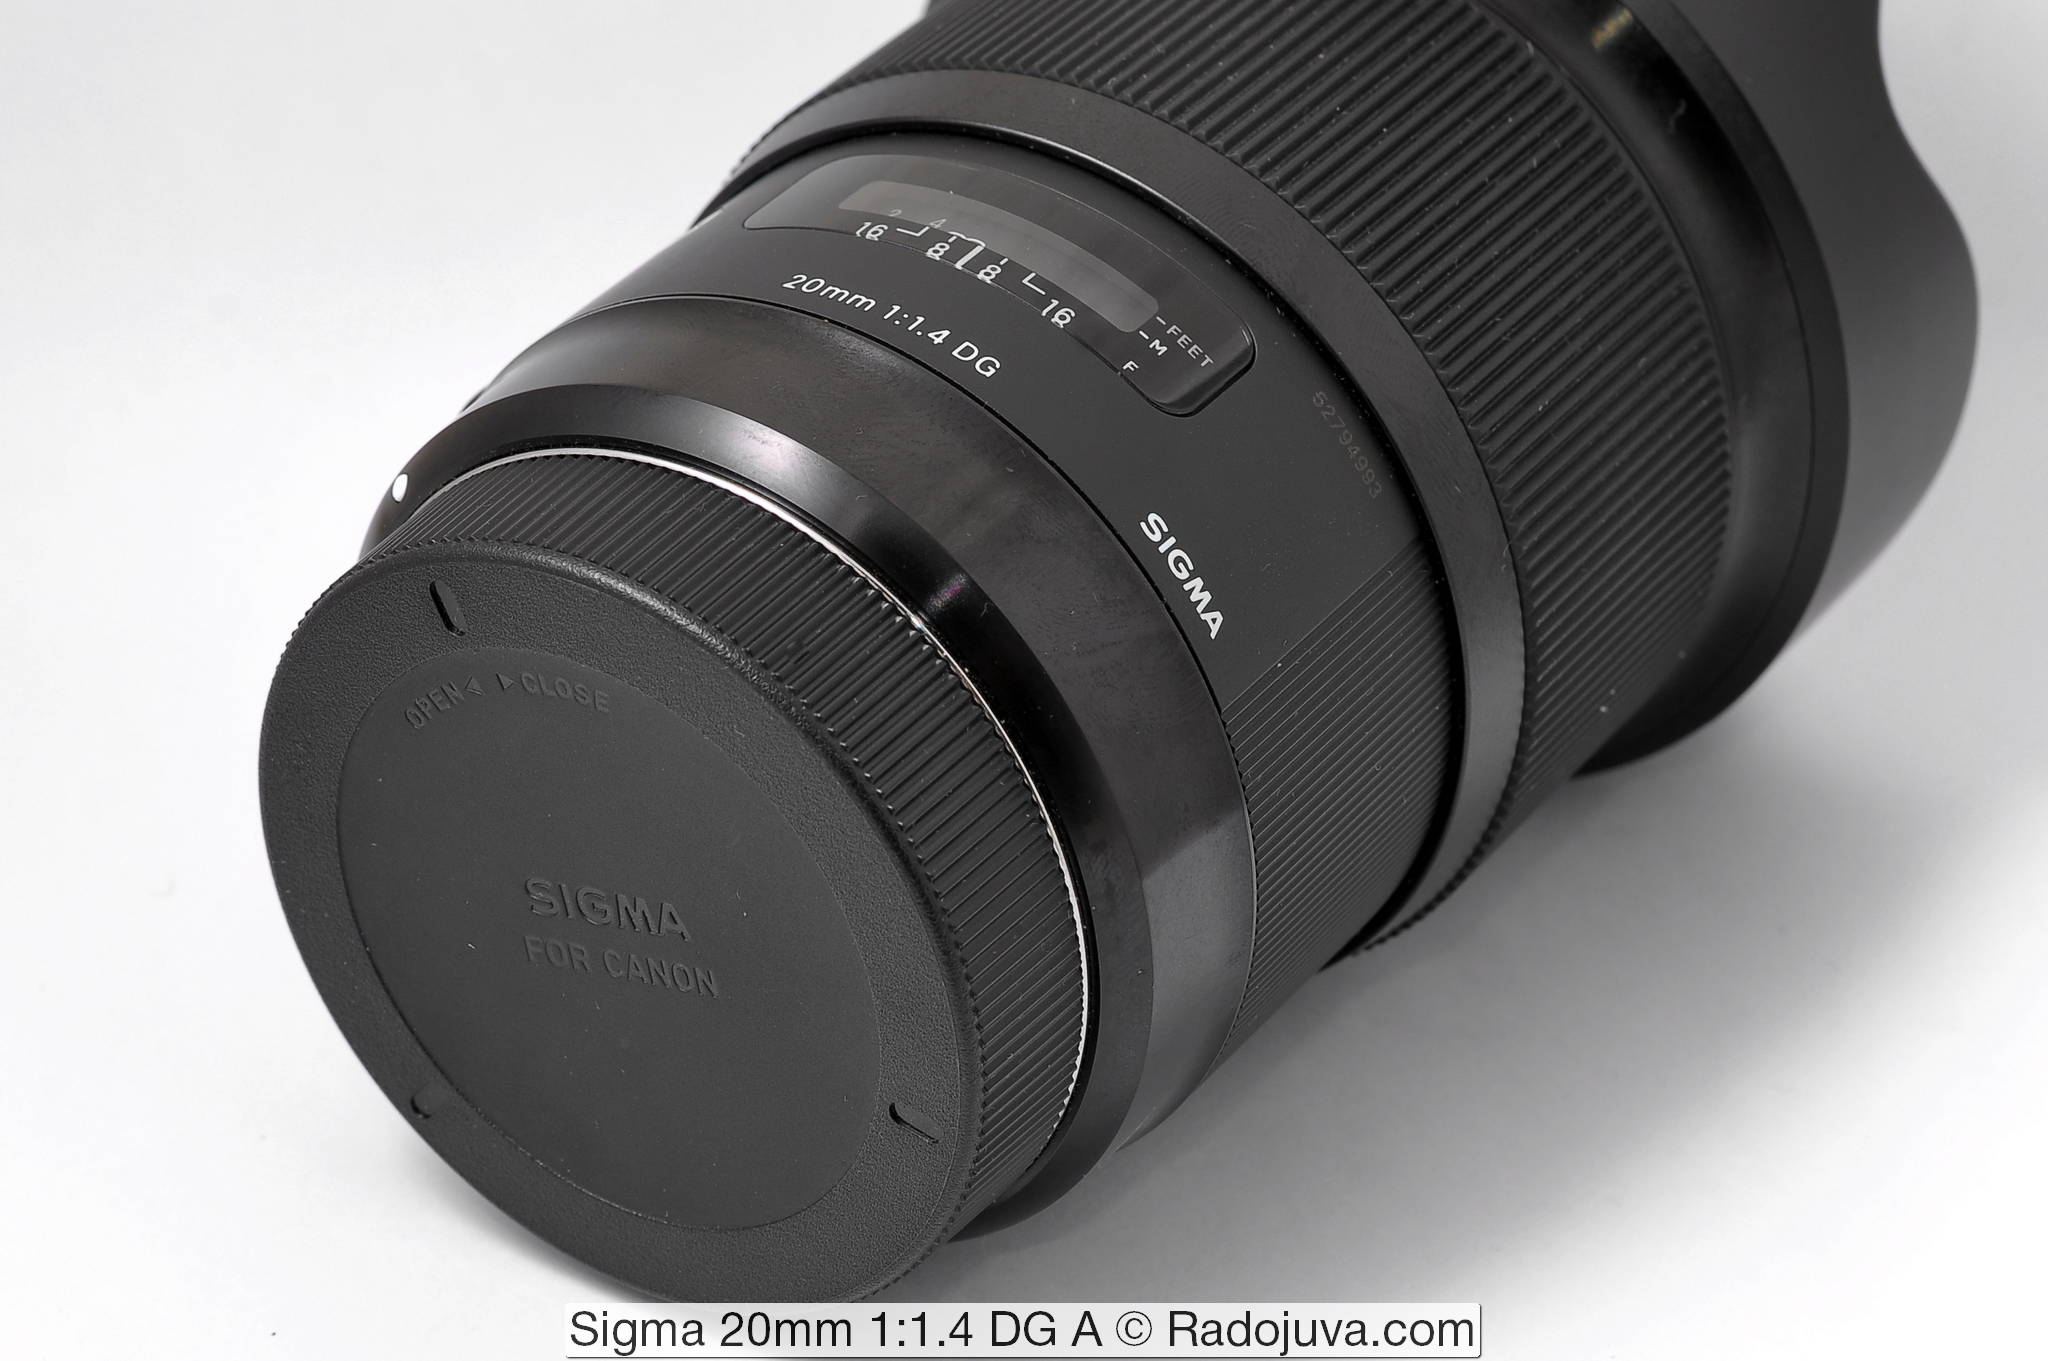 Sigma 20mm 1:1.4 DG Art